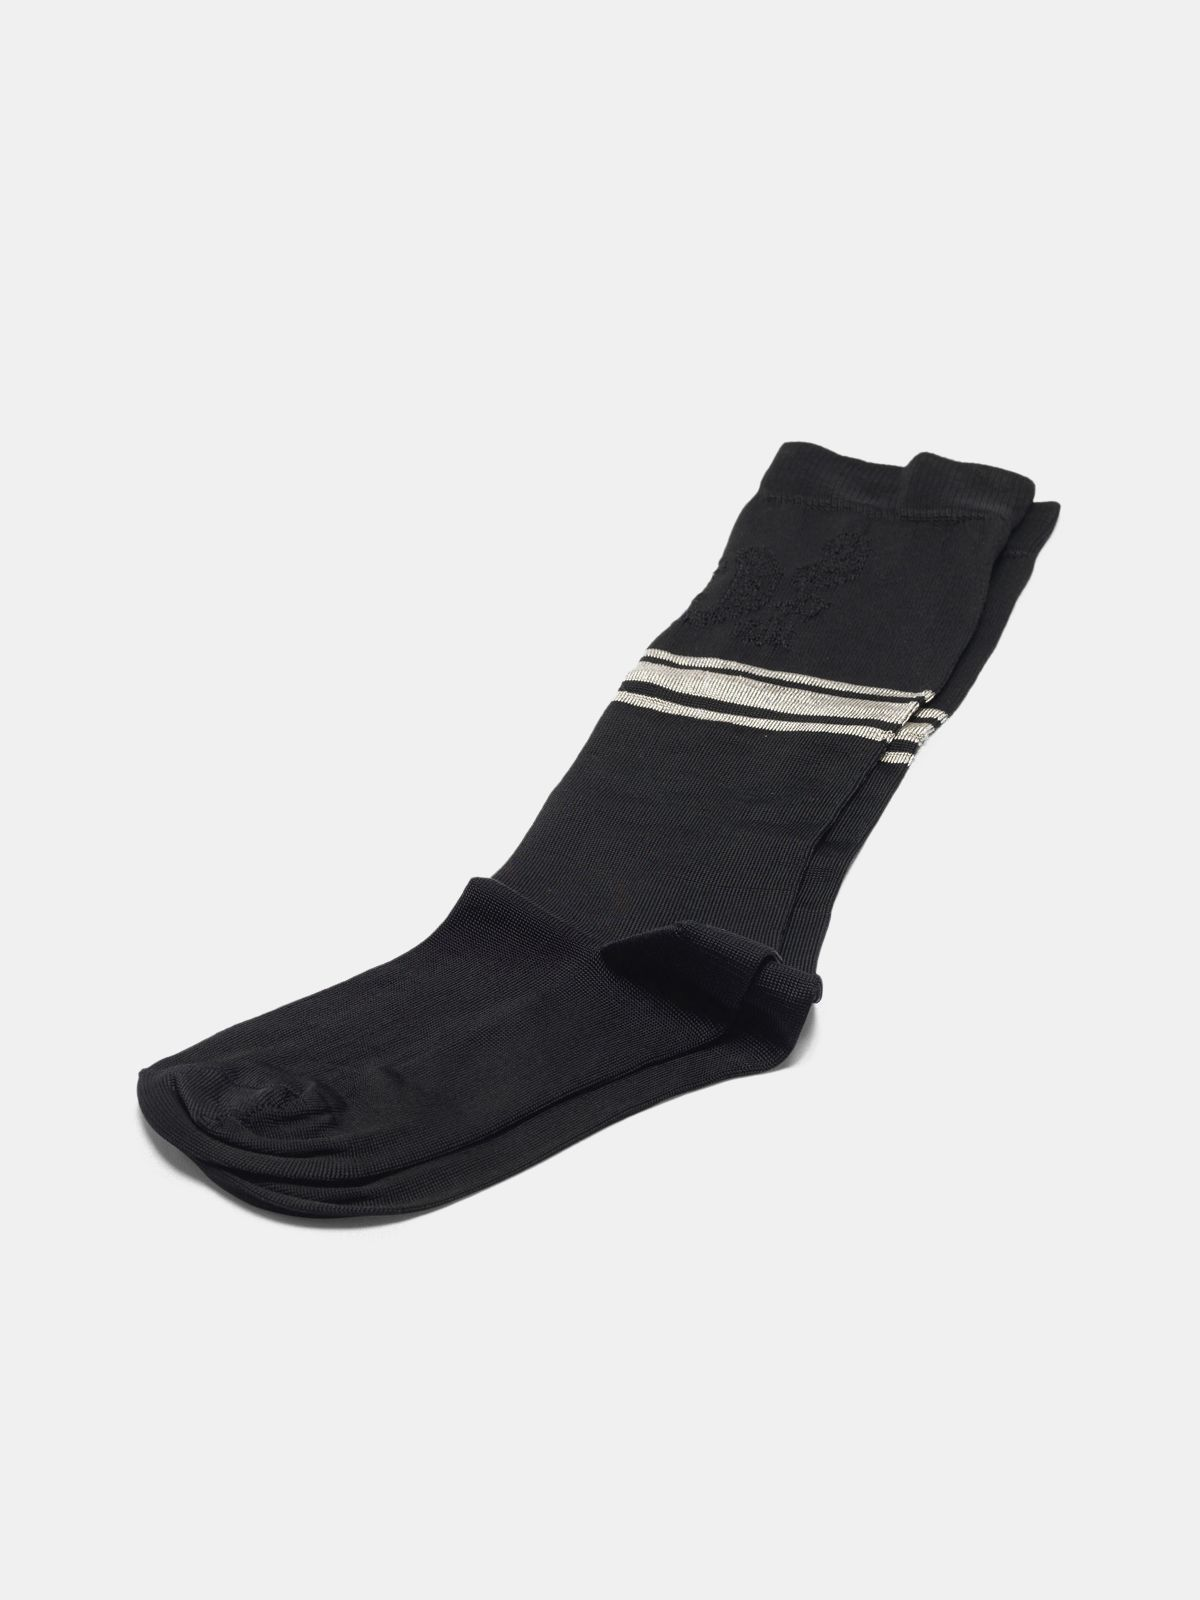 Golden Goose - Black Addison socks with jacquard pattern in